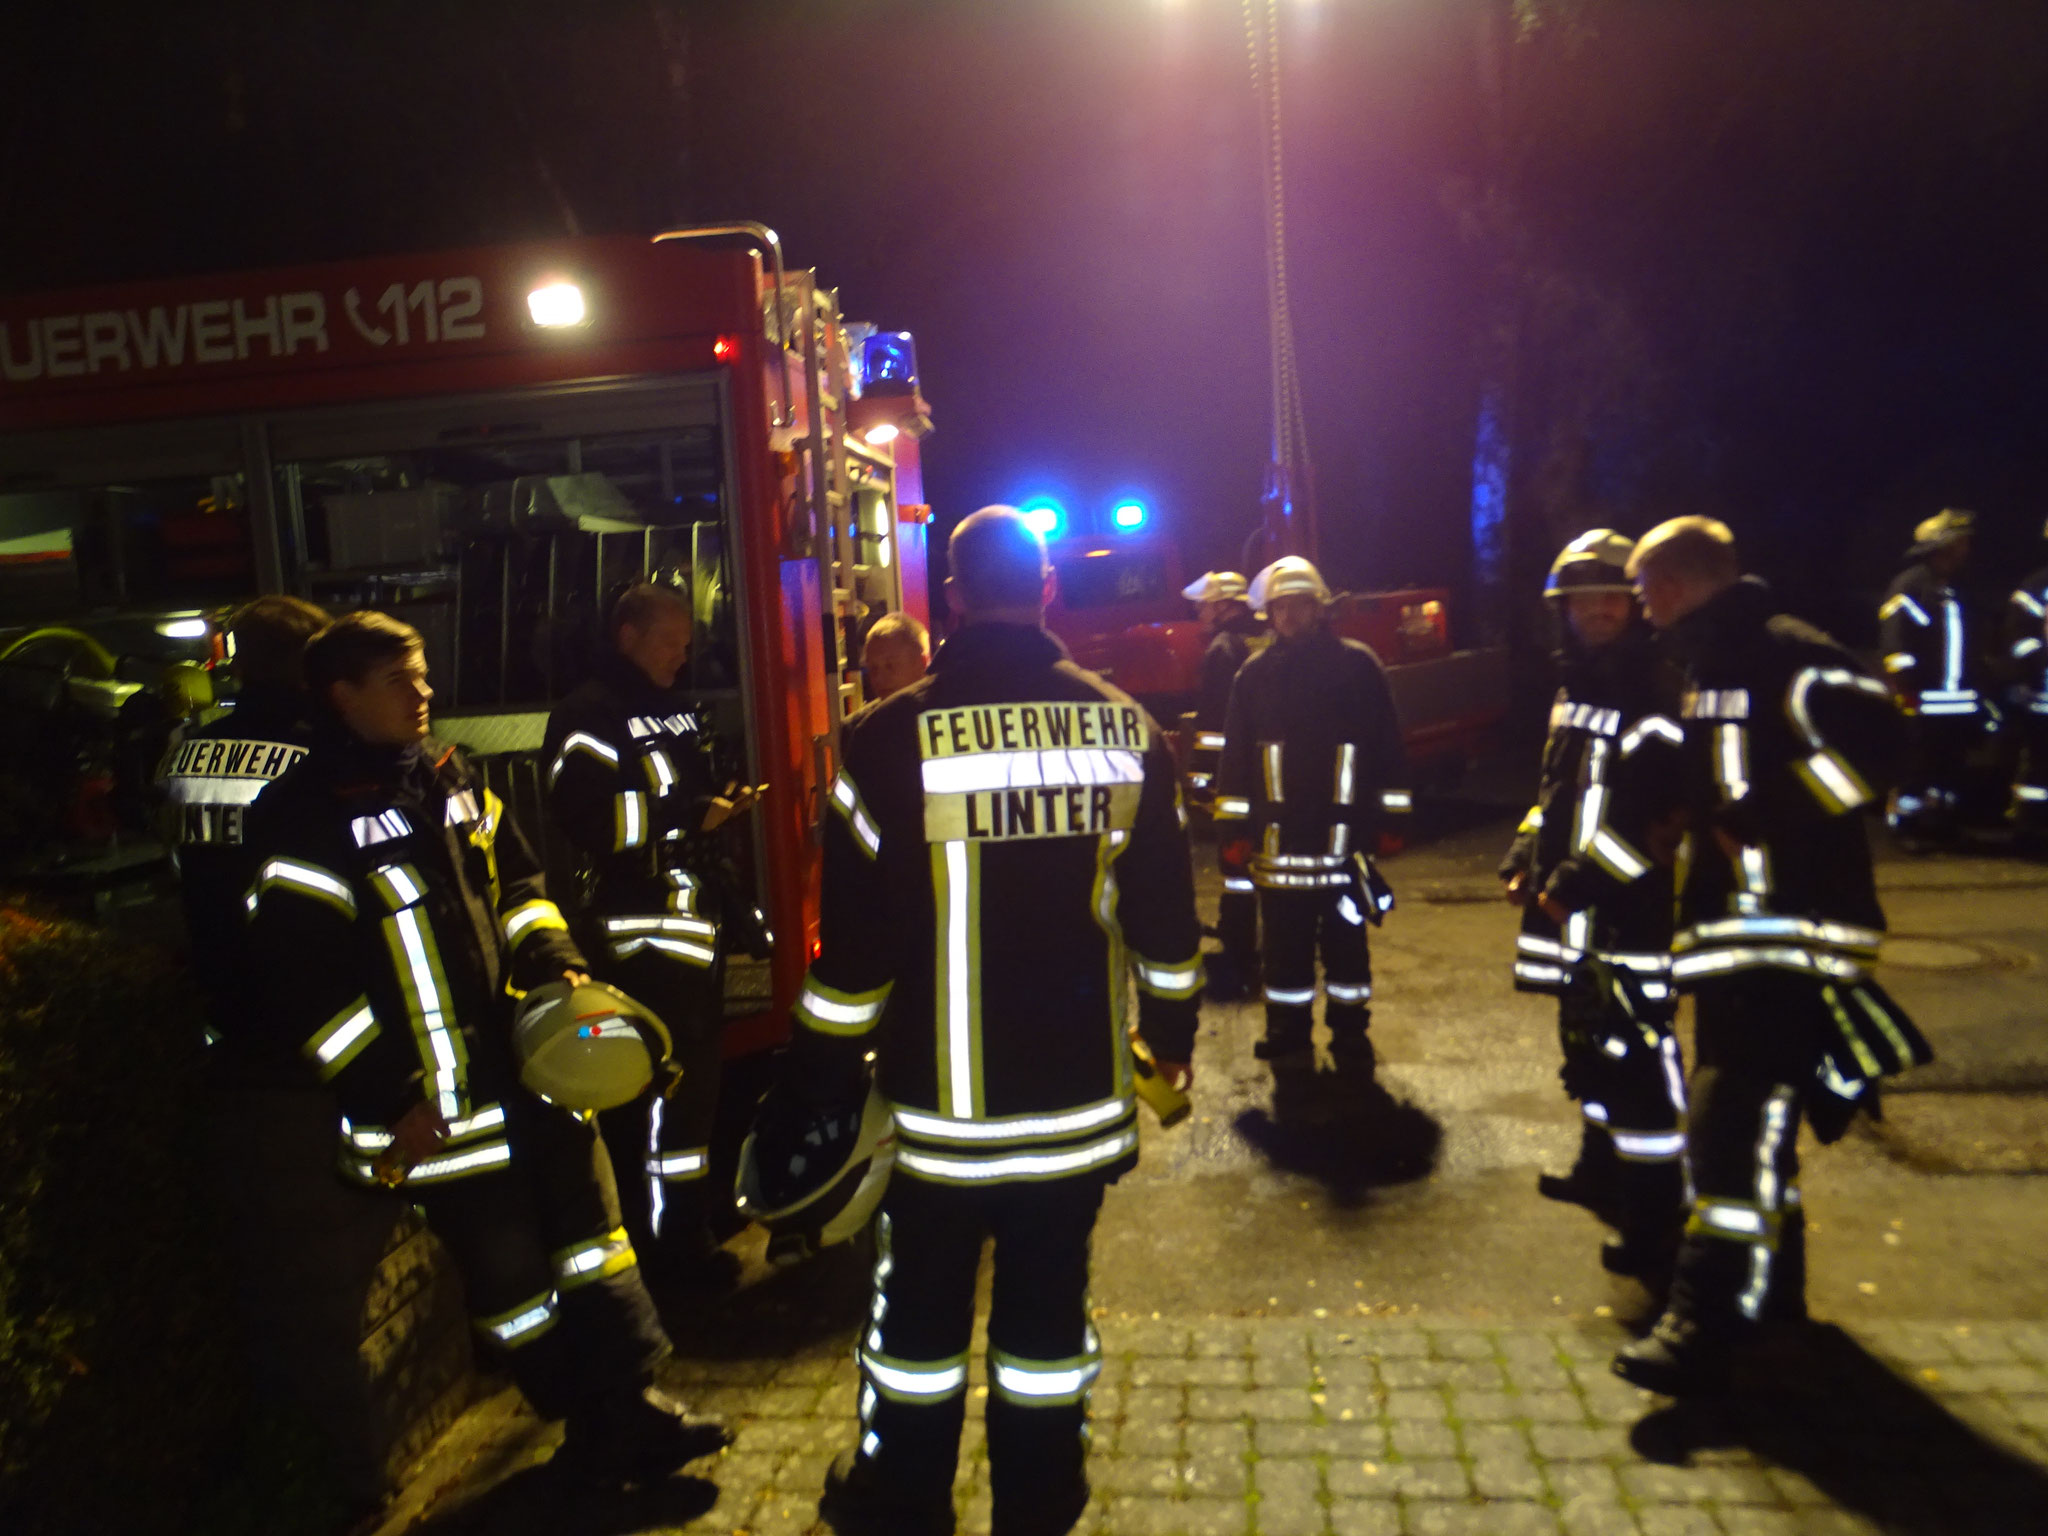 Brand in Linter 10.10.2016